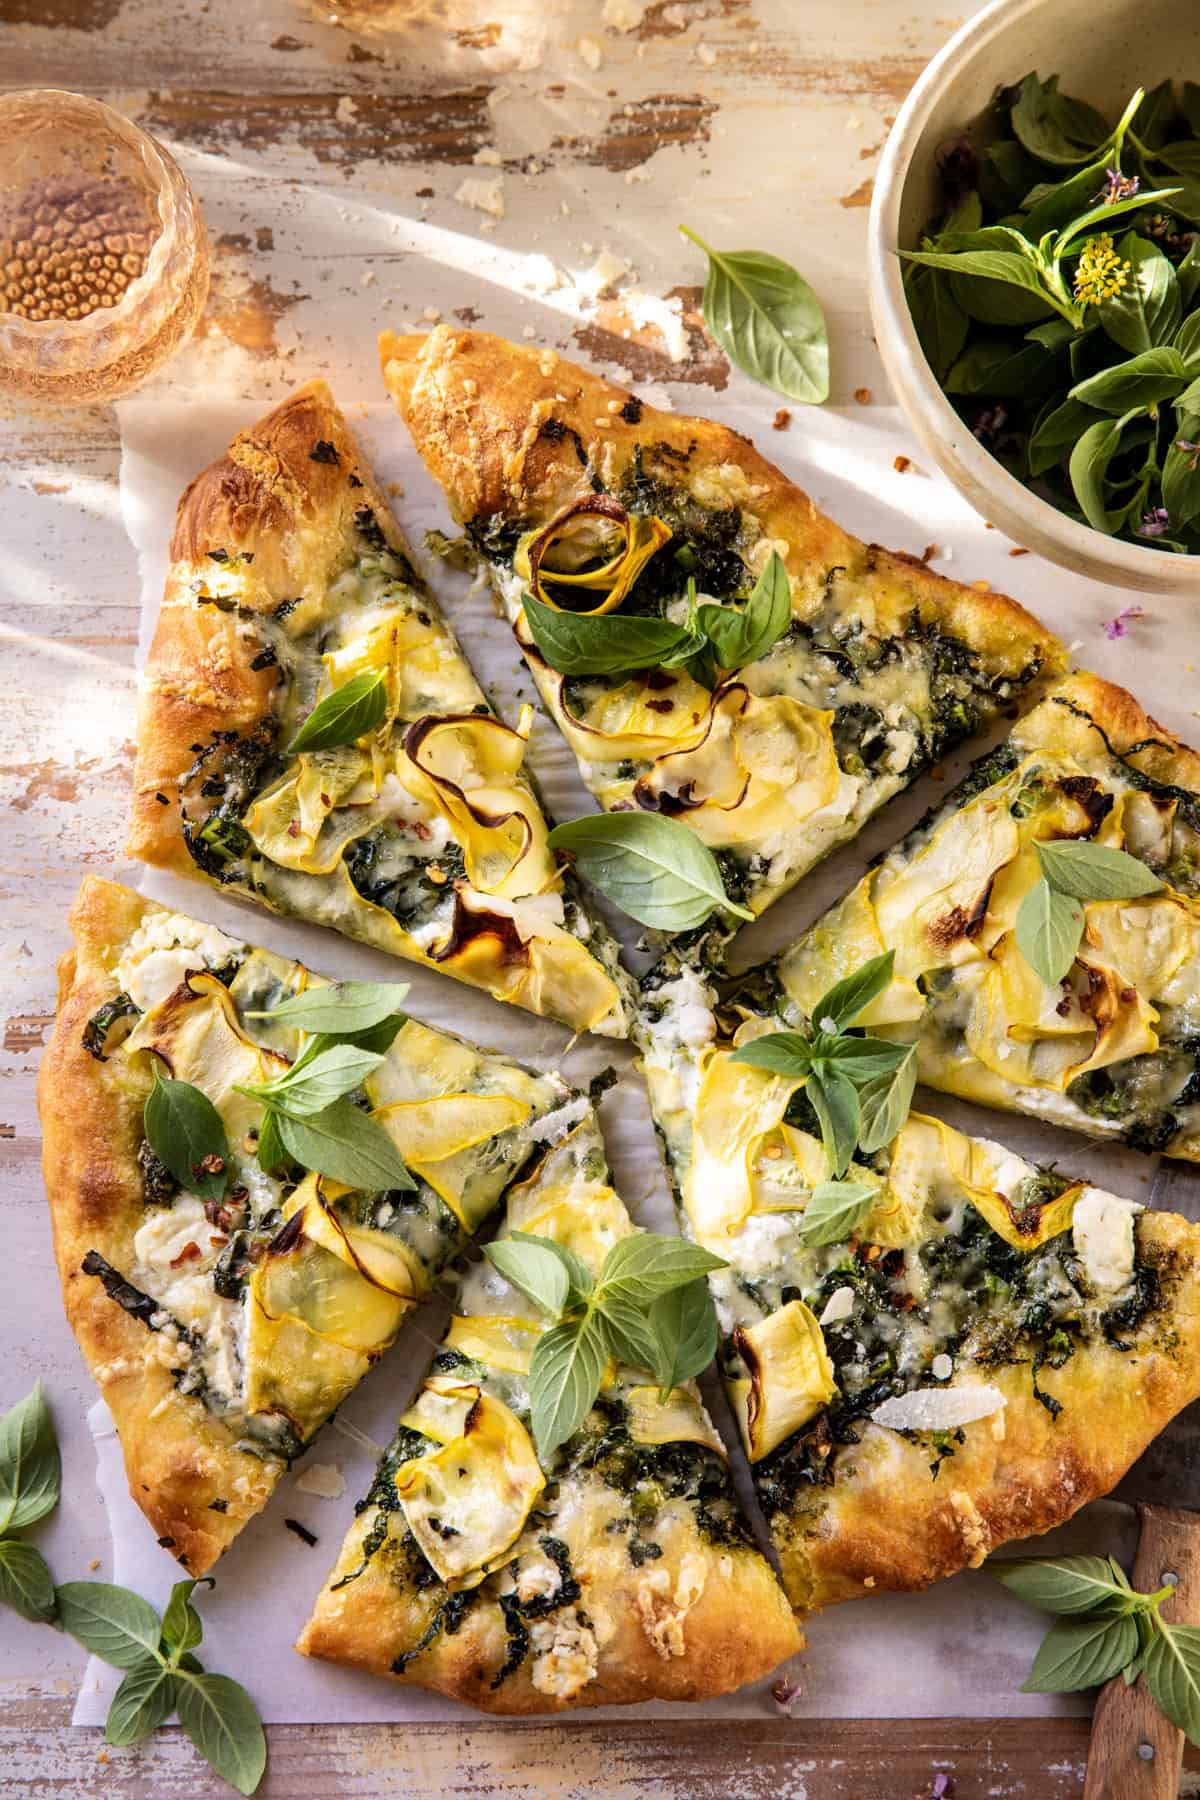 What to make with the veggies in your August CSA box: Garden Greens Pizza at Halfbaked Harvest